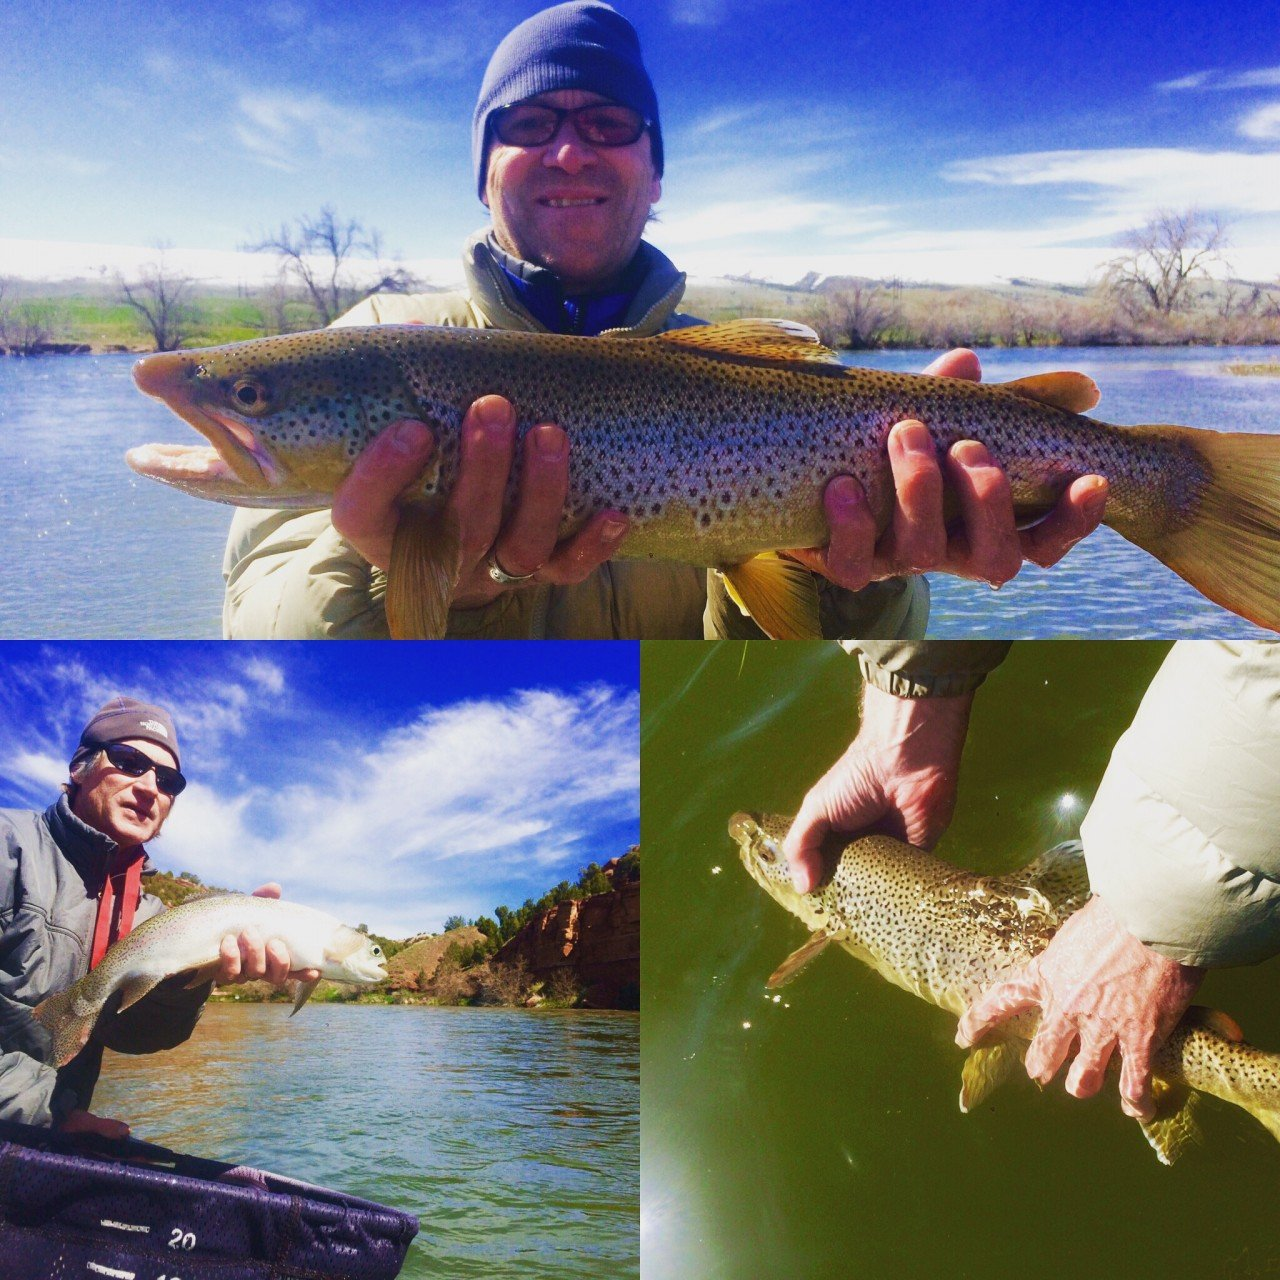 Sustianable Consumer Guide Fishing: Bighorn & Green River Fishing Report: Spring Water Flows